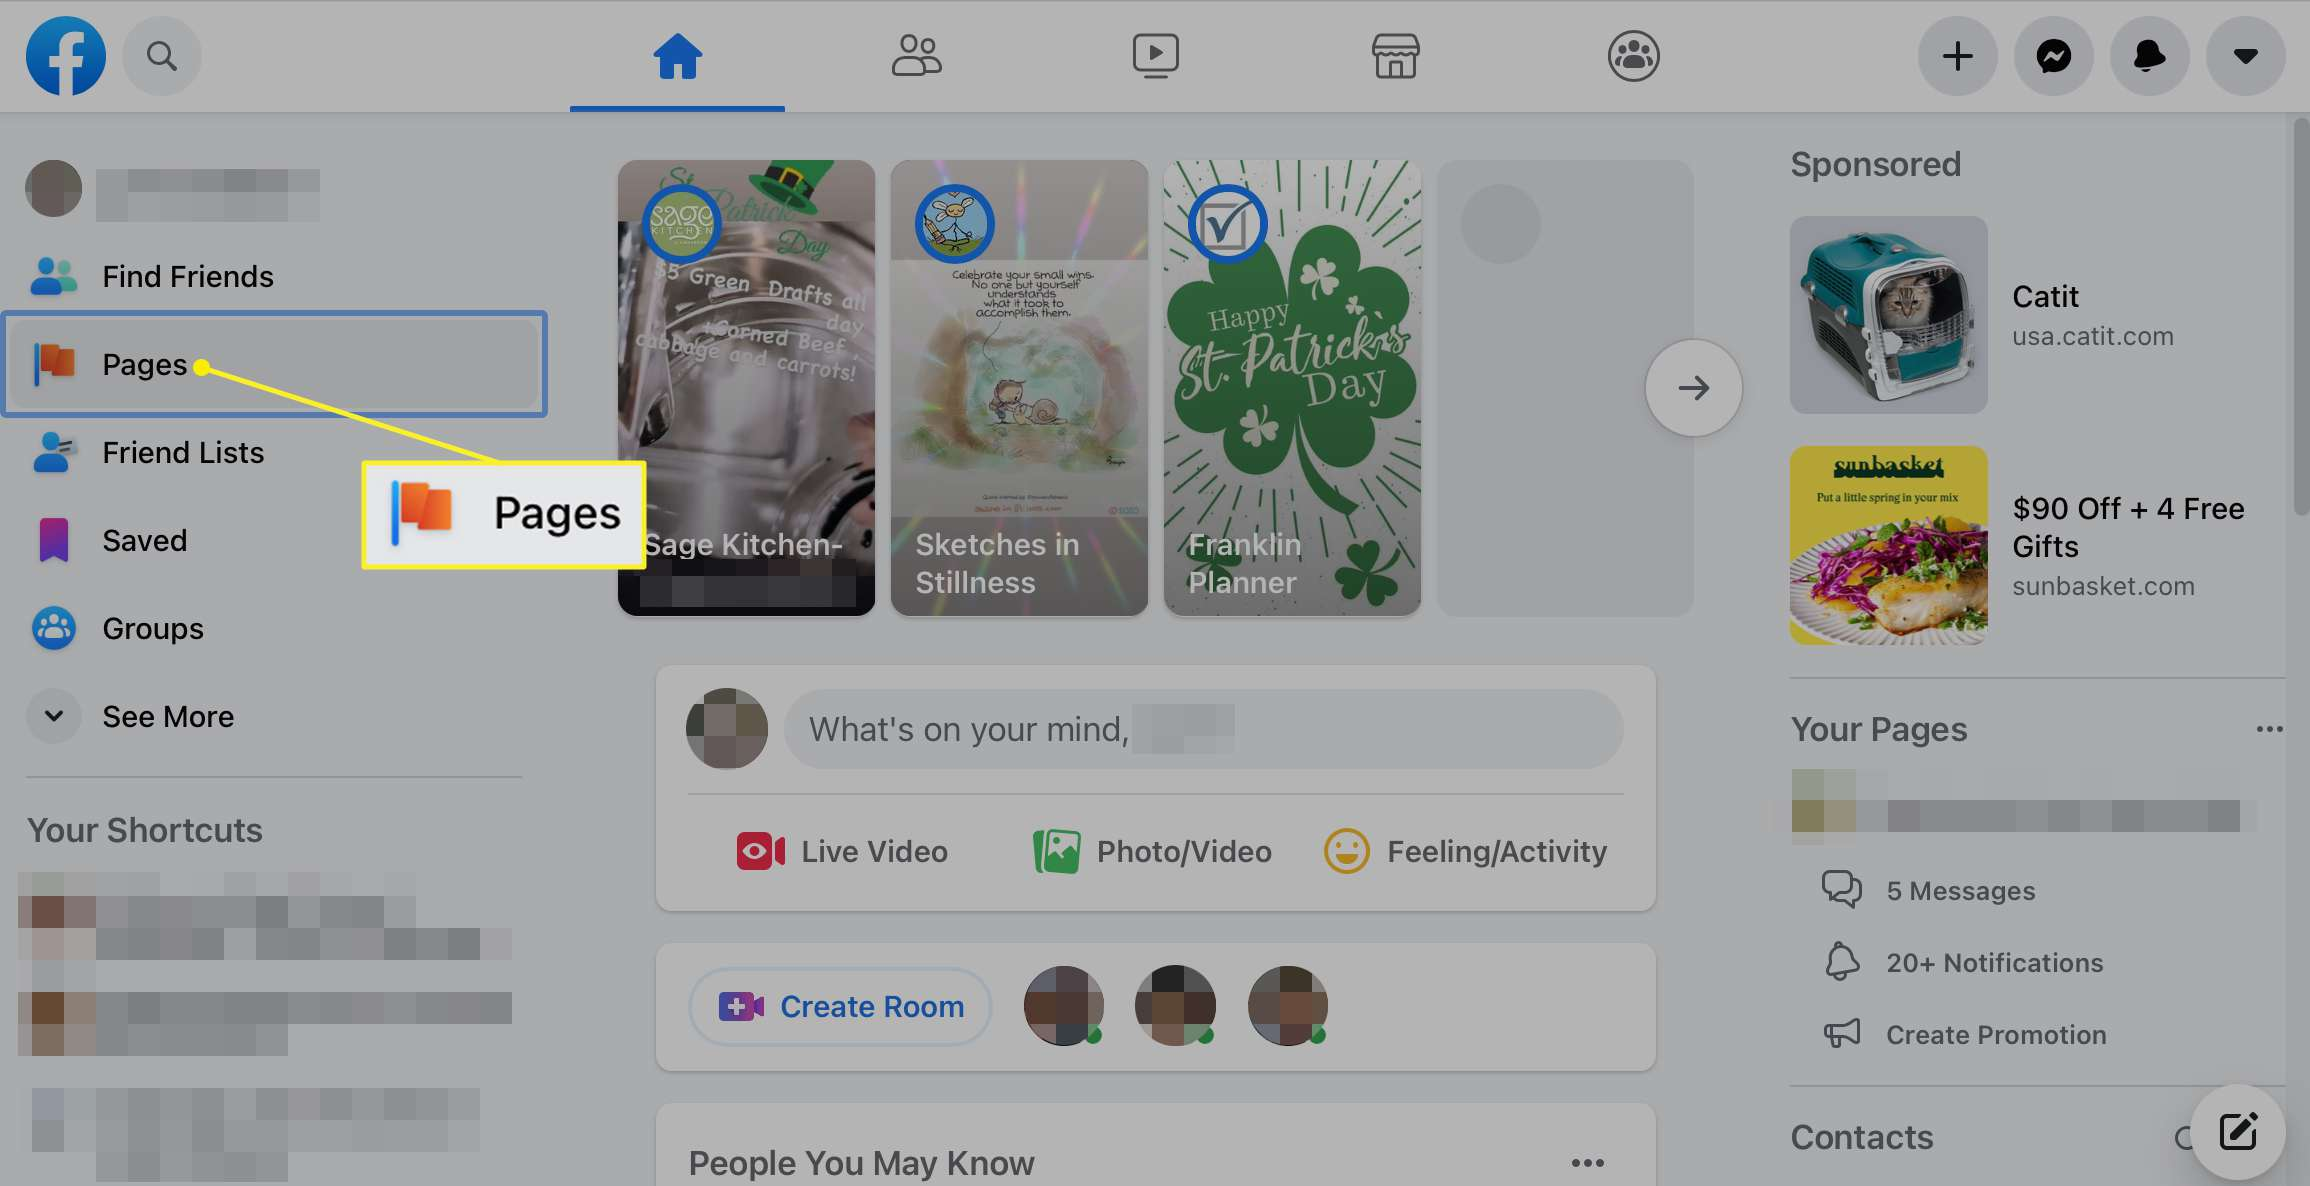 Pages selected in the Facebook sidebar